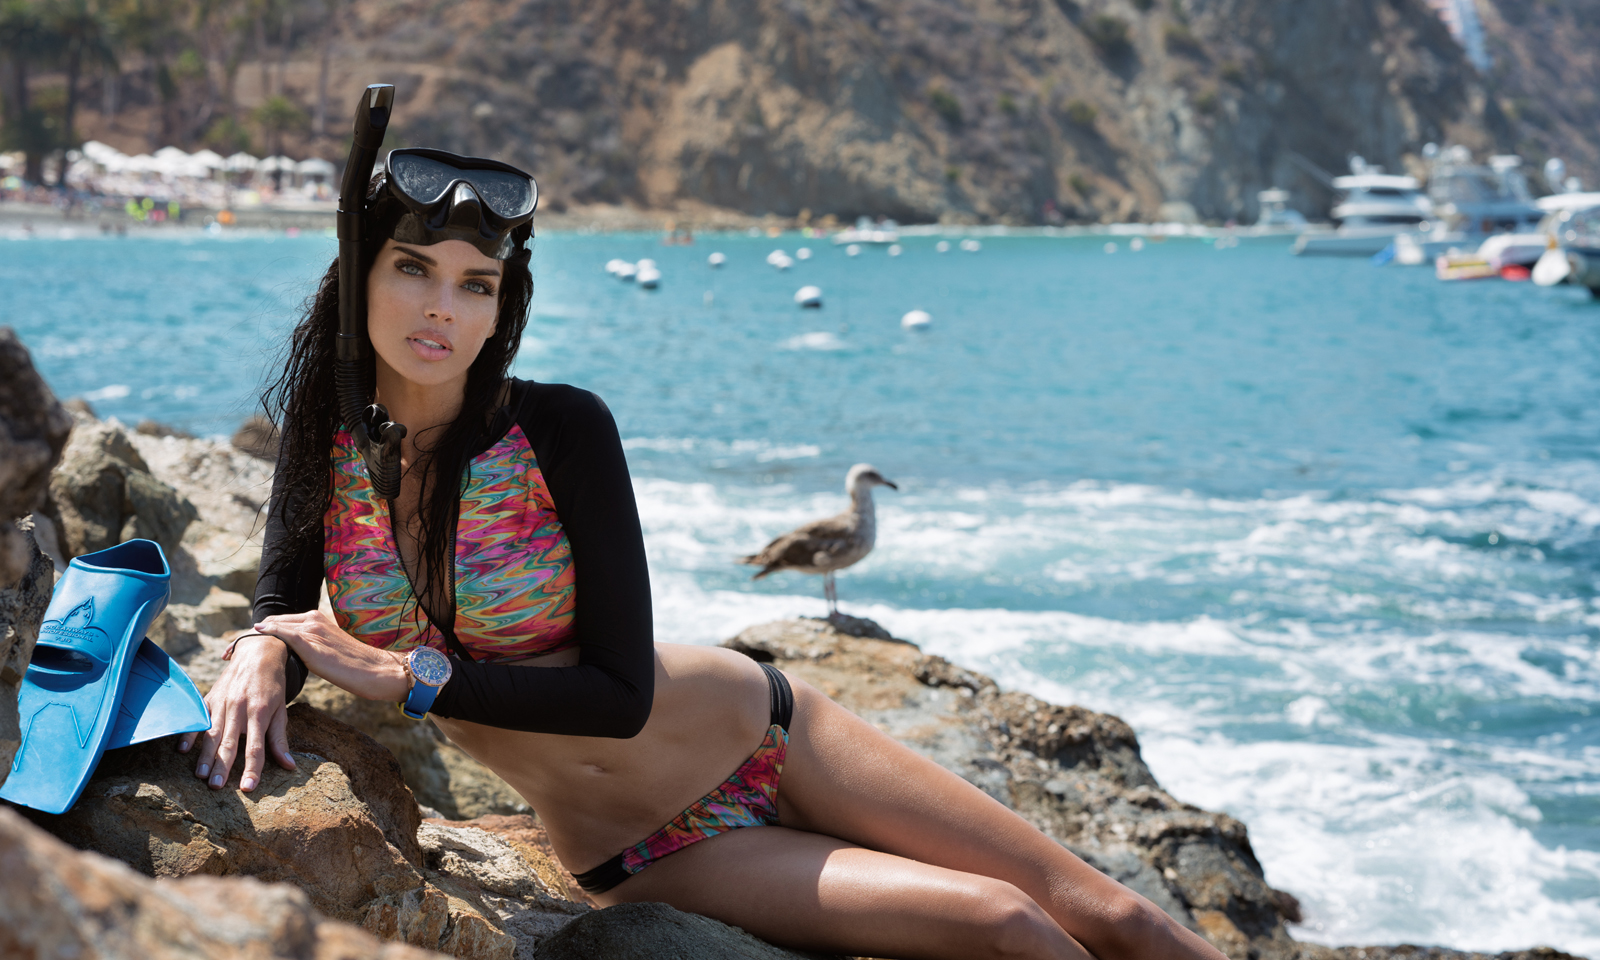 Top 20 Sexiest-2017-Patience-Silva-Dreamstate-Live-Yandy-snorkeling-Feature, Photography Dreamstate Live